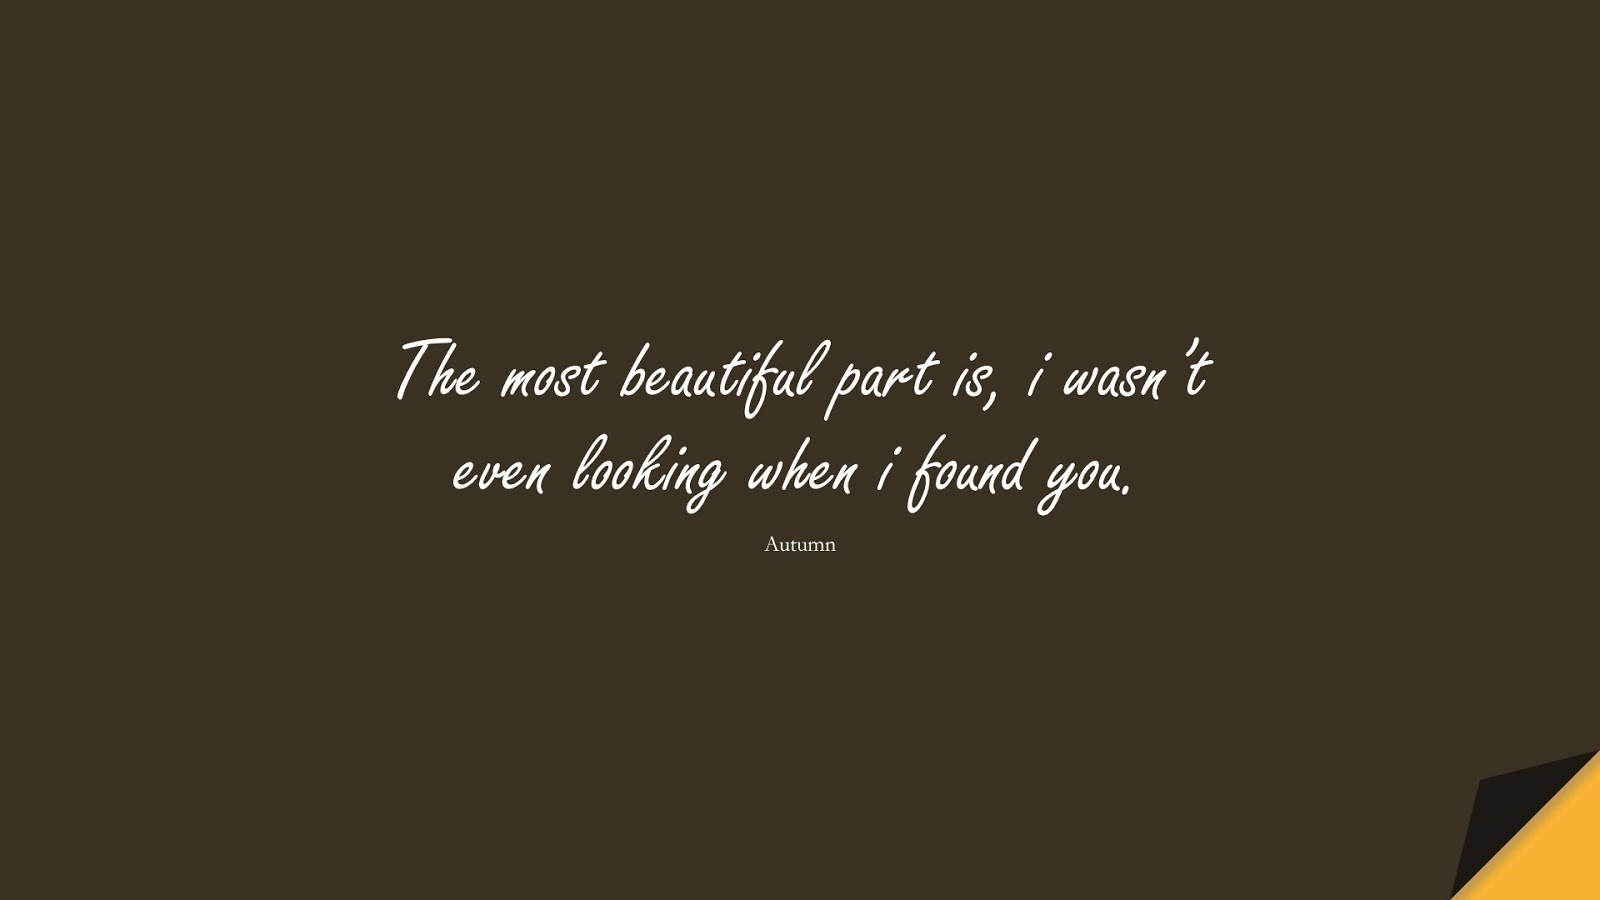 The most beautiful part is, i wasn't even looking when i found you. (Autumn);  #LoveQuotes